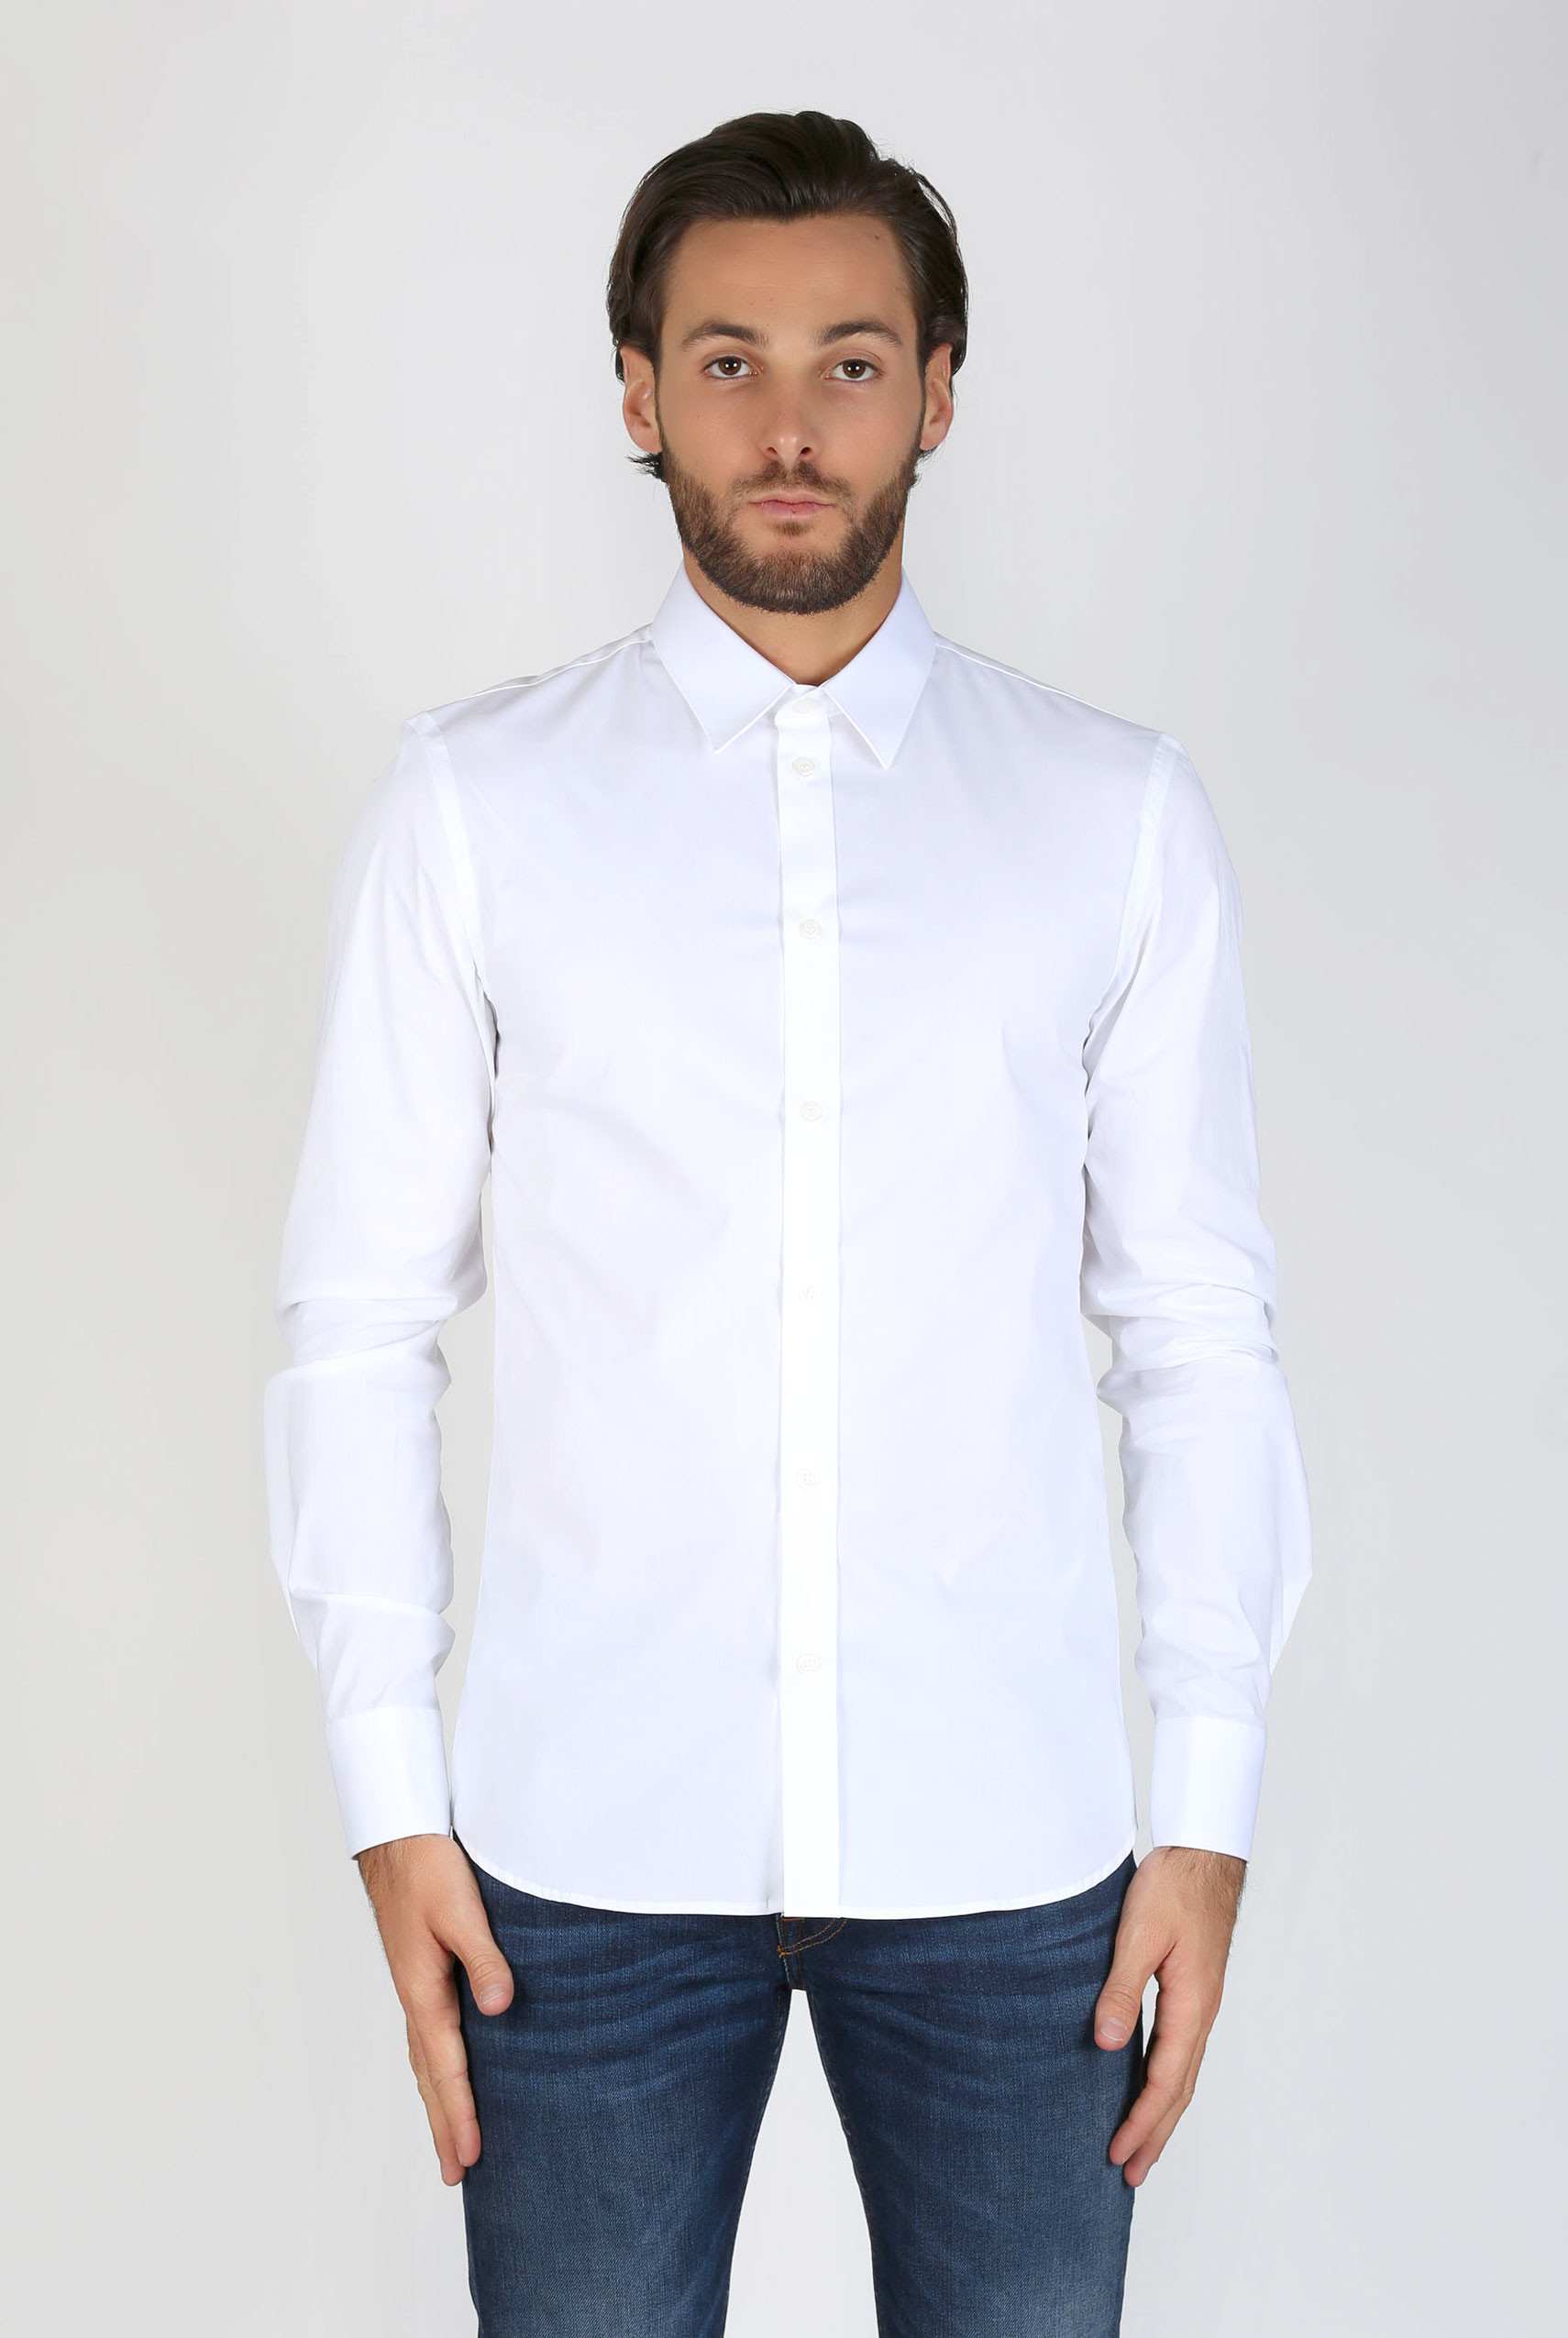 CHEMISE FILIPPA K BLANCHE MAN PAUL STRETCH SHIRT WHITE 22844-1009